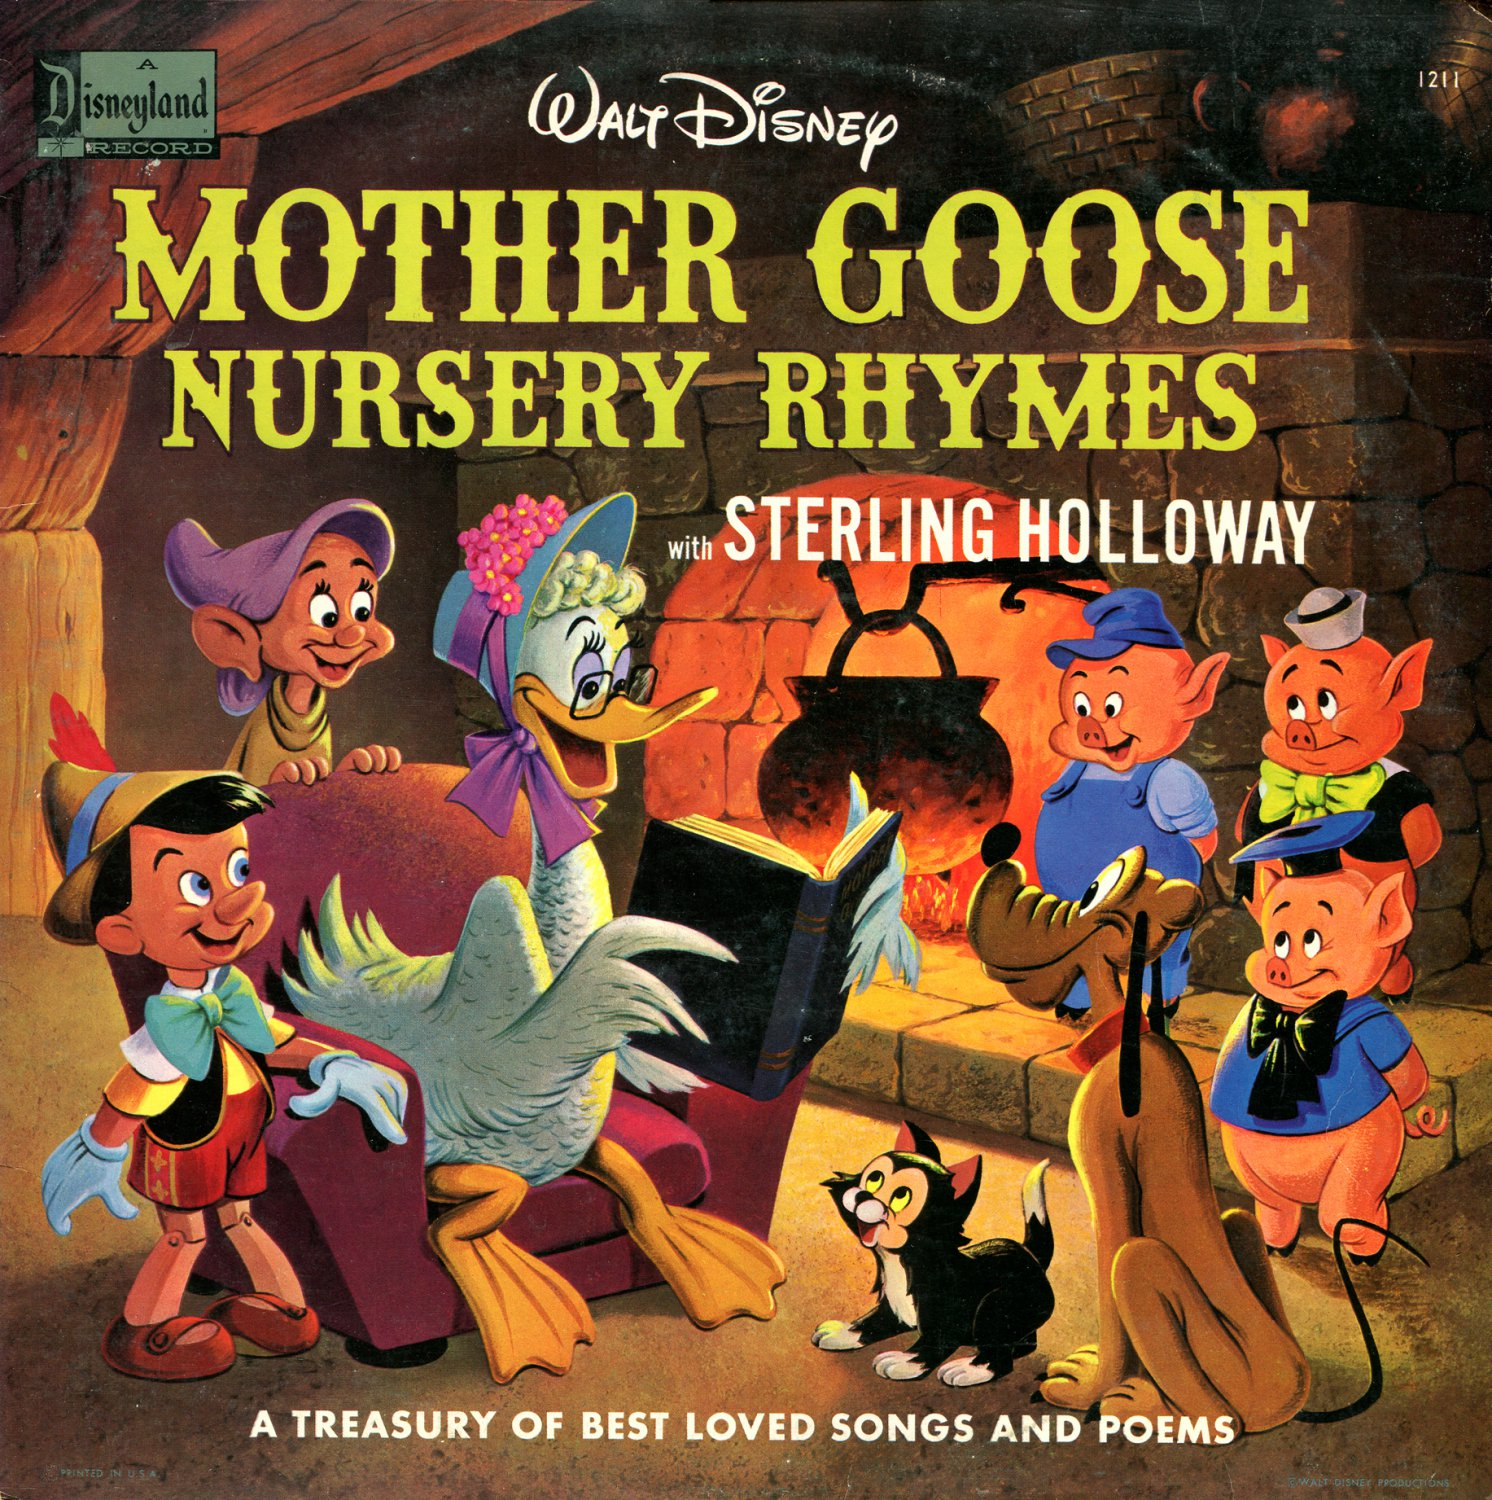 Mother Goose Nursery Rhymes - A Walt Disney Treasury Collection, Children's Songs LP/CD